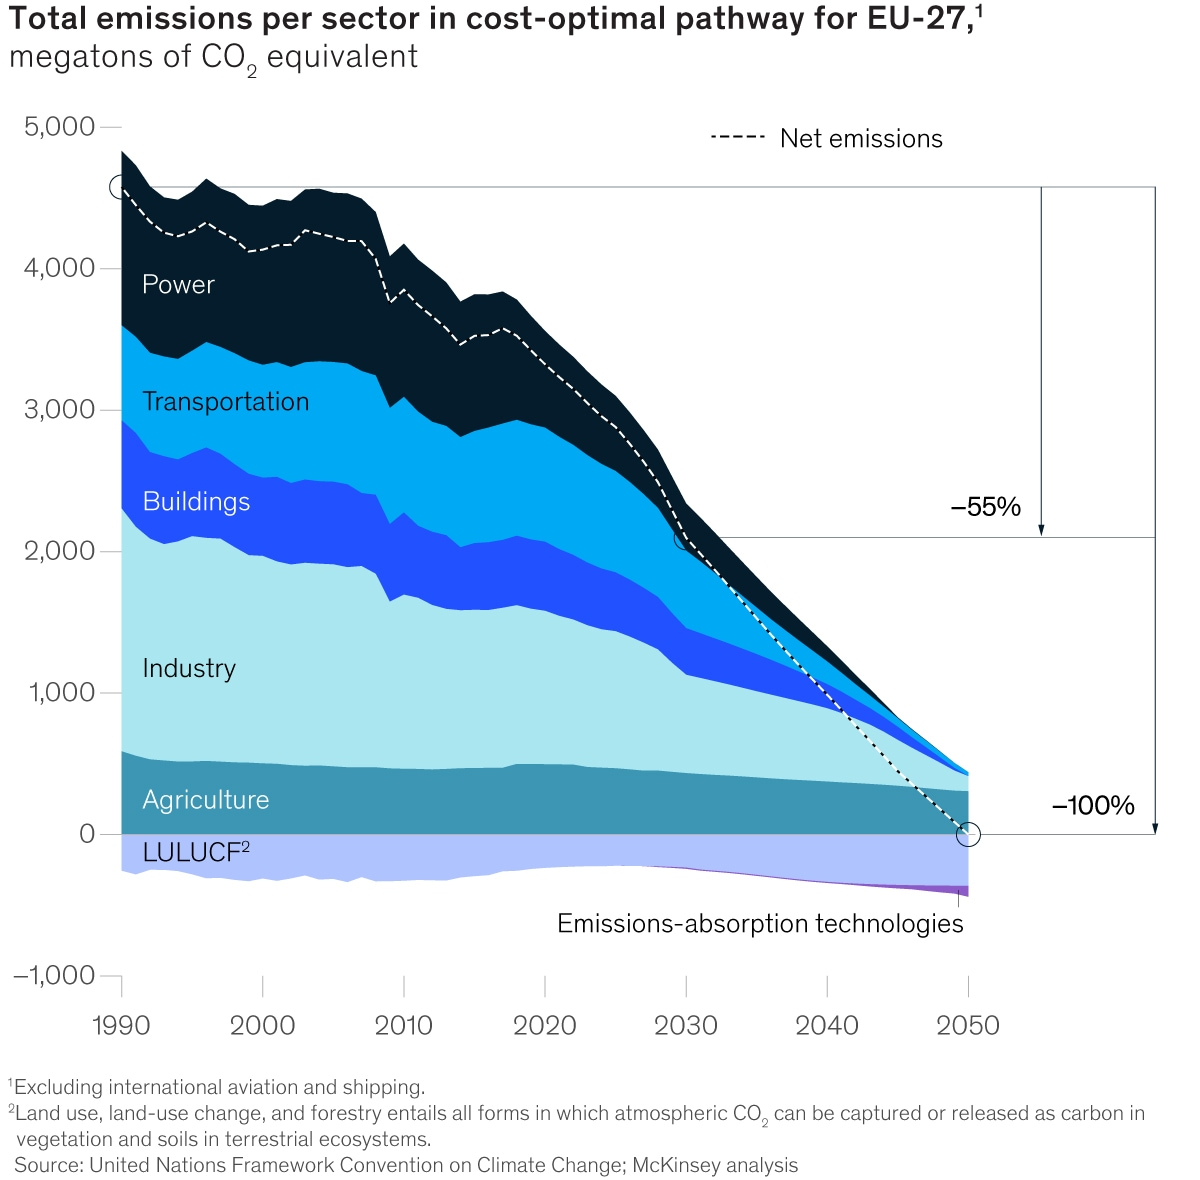 Total emissions per sector in cost-optimal pathway for EU-27